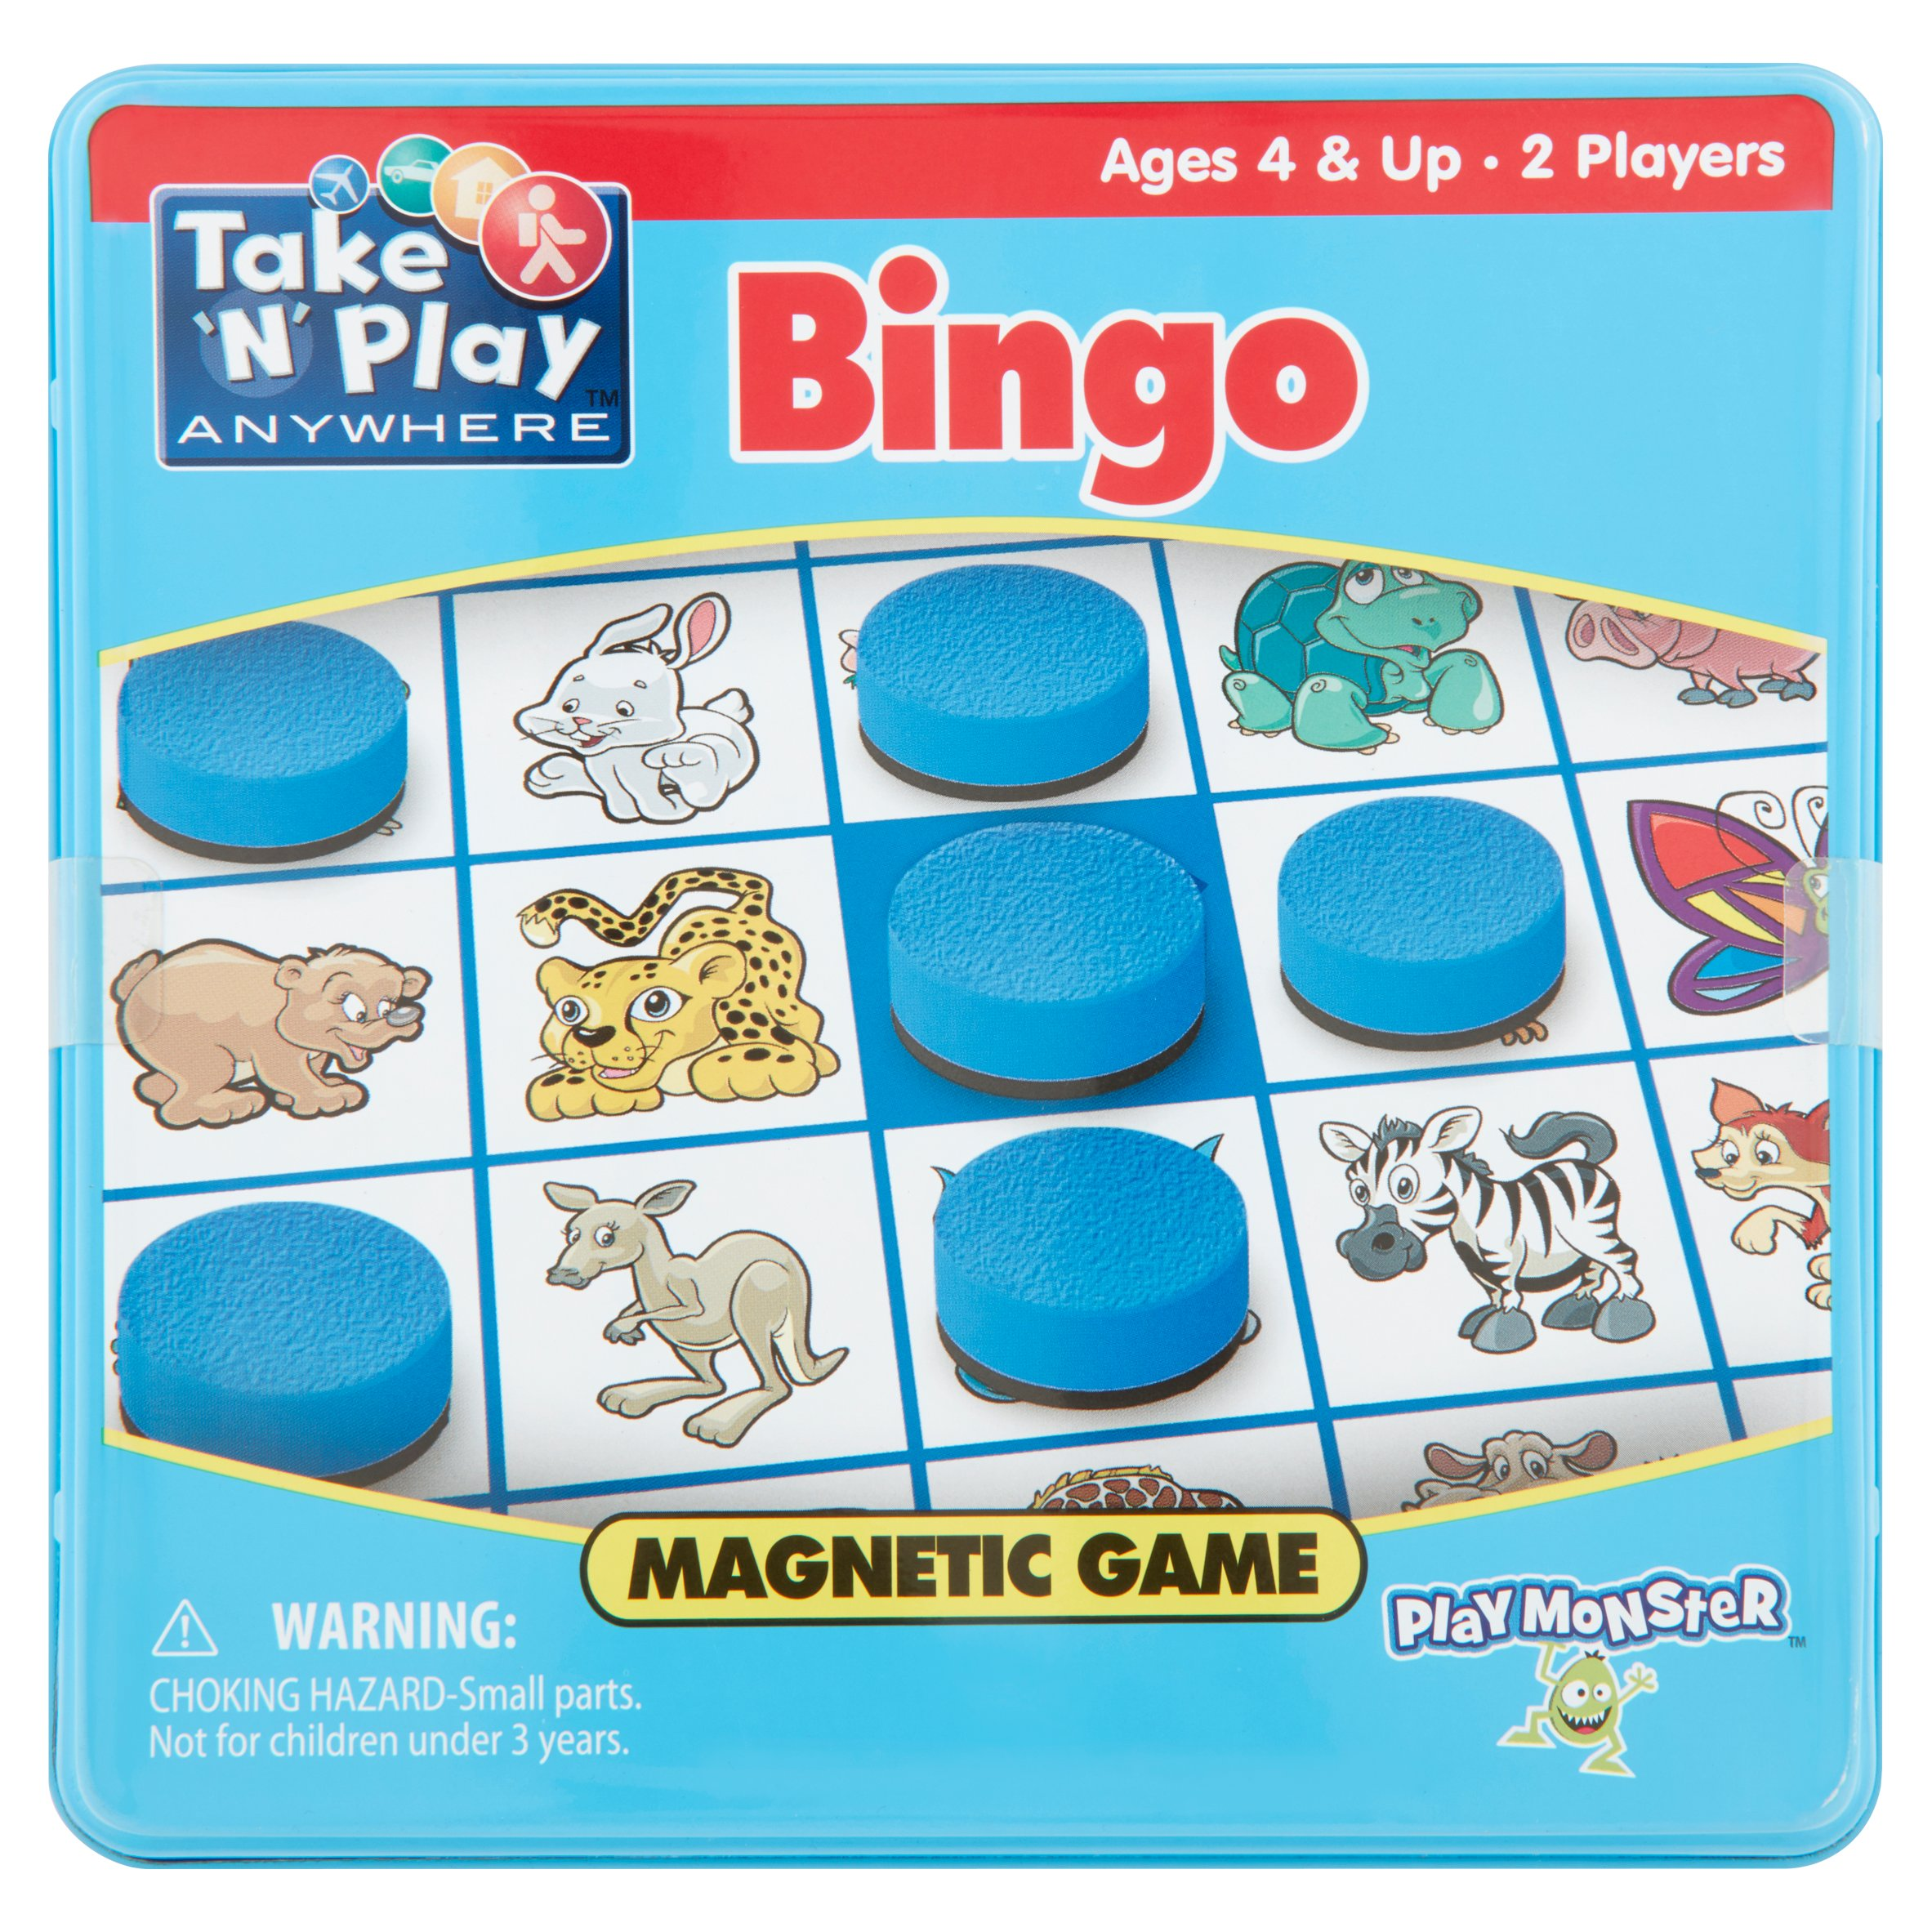 Play Monster Take 'N' Play Anywhere Magnetic Game Ages 4 & Up